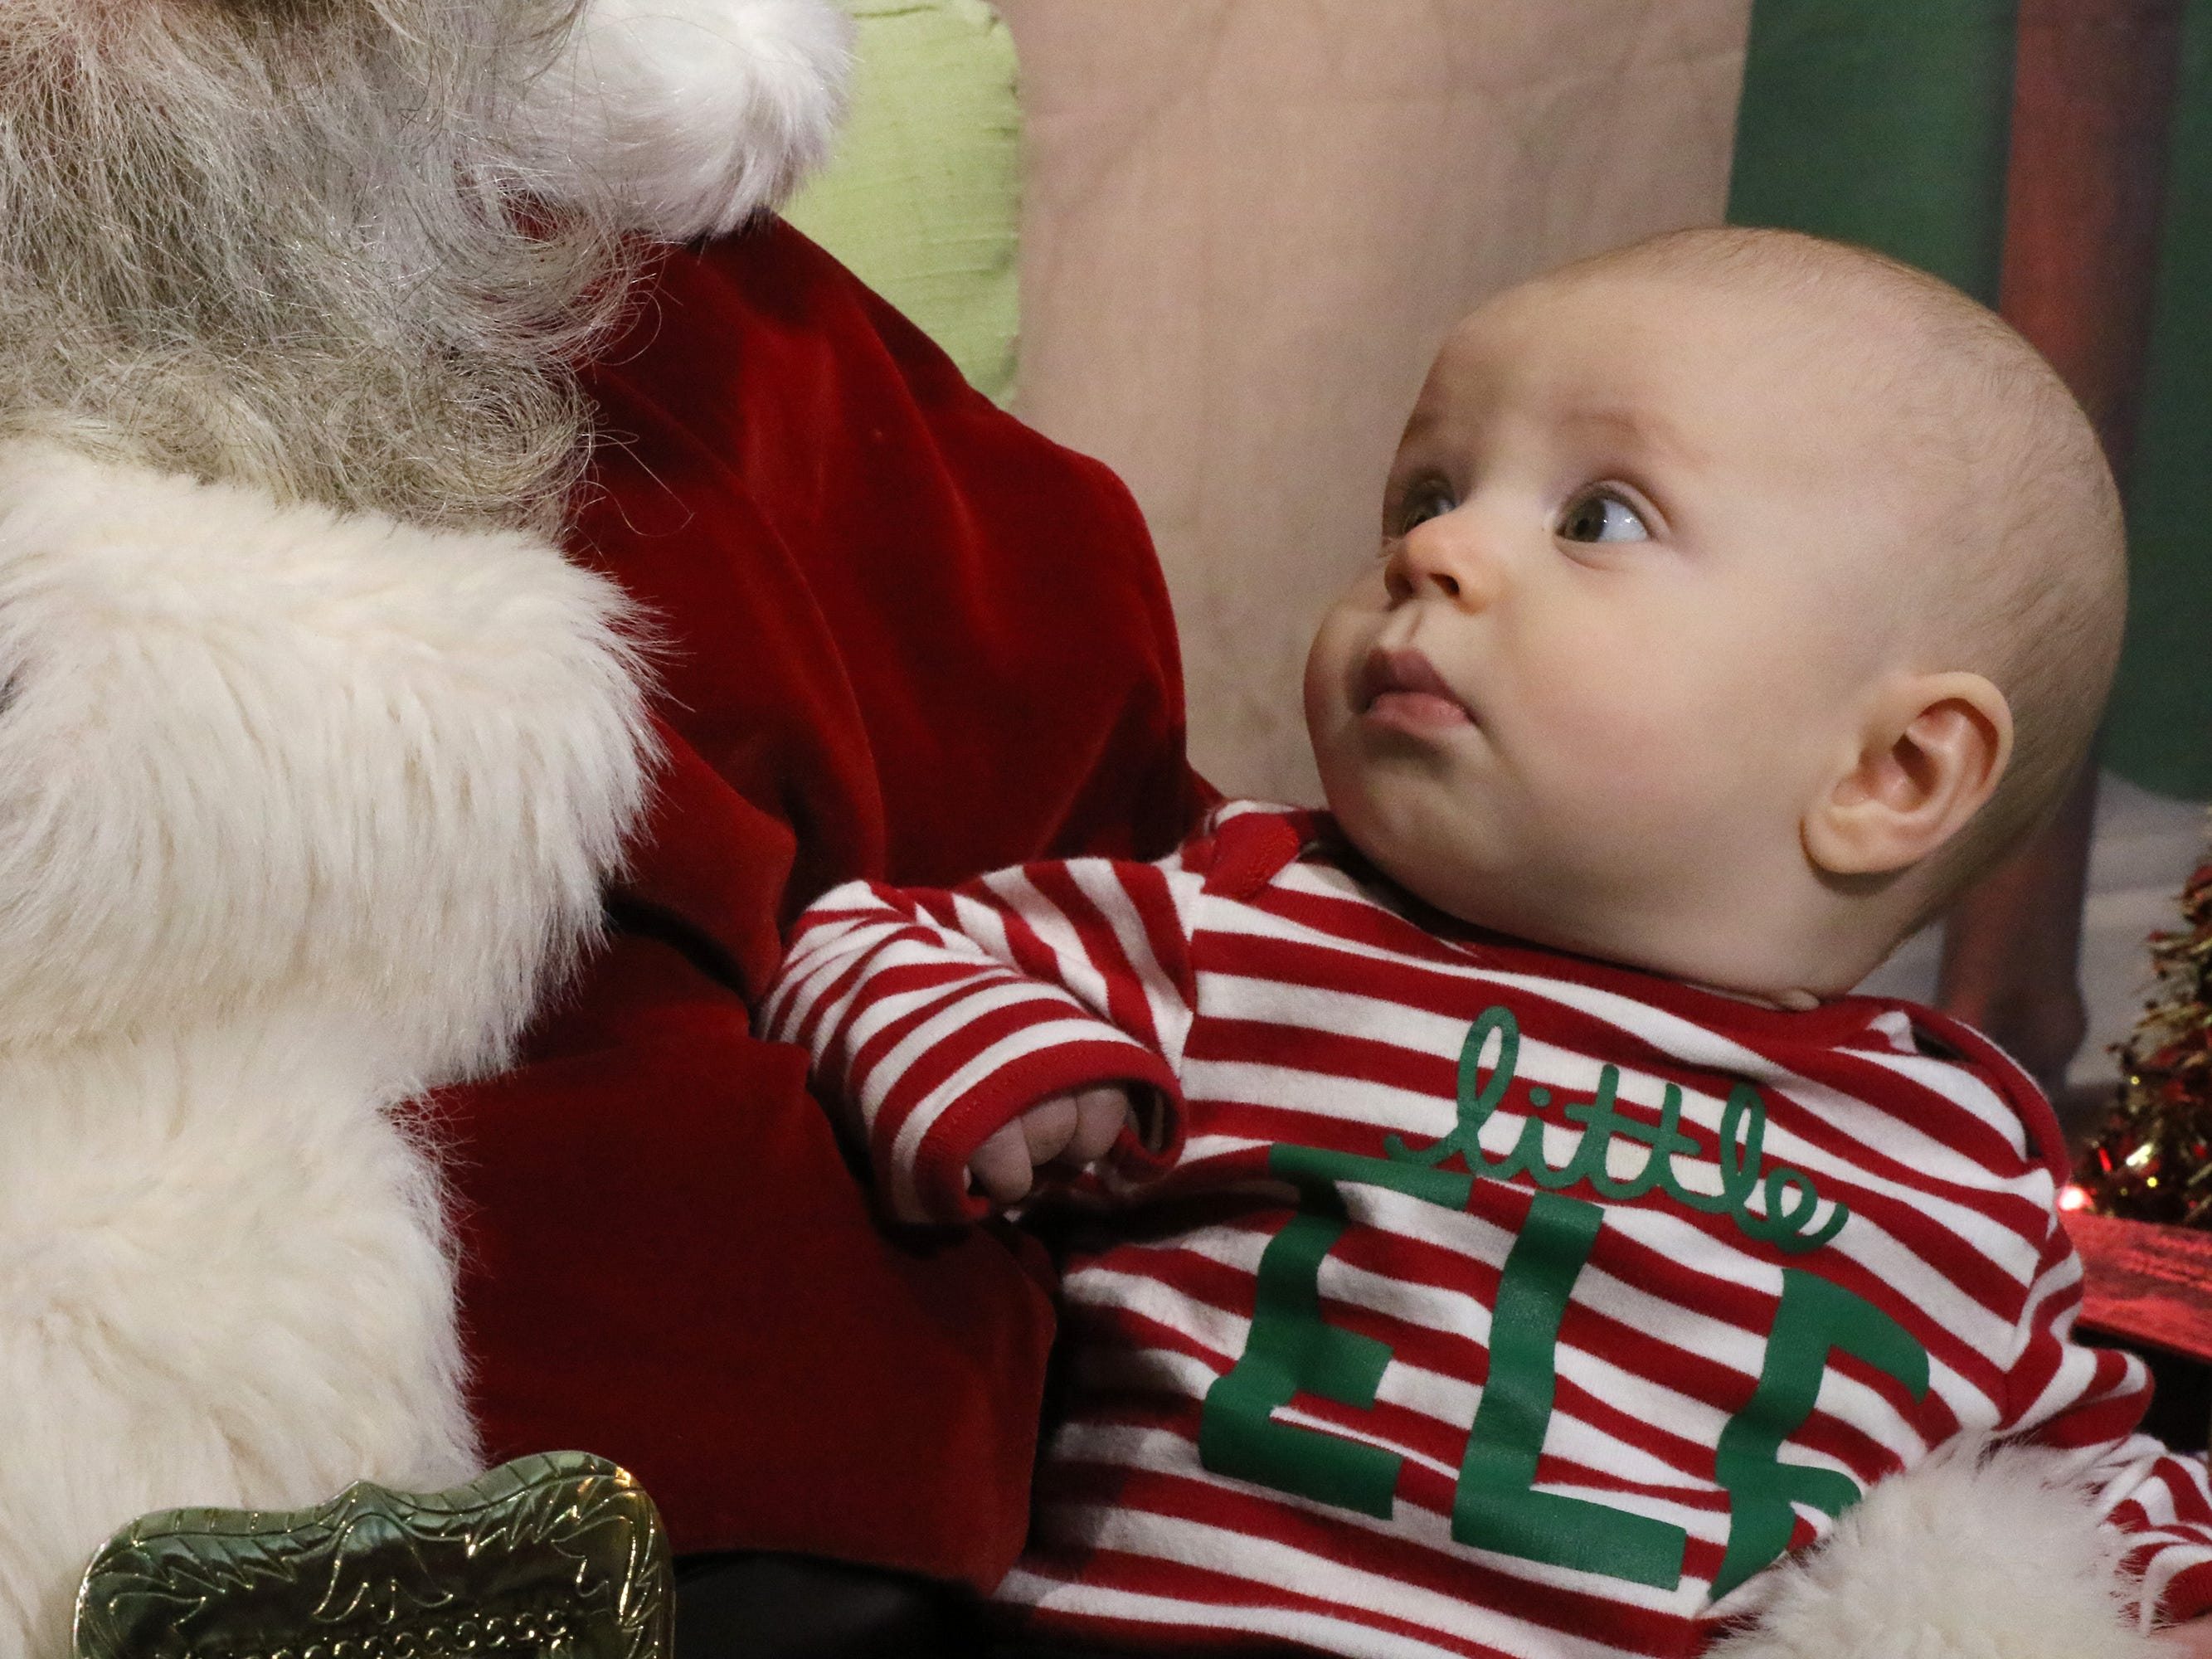 Charlie Rothe has his first visit with Santa at Gifts of Wings during Greendale's Dickens of a Christmas Festival on Nov. 30.